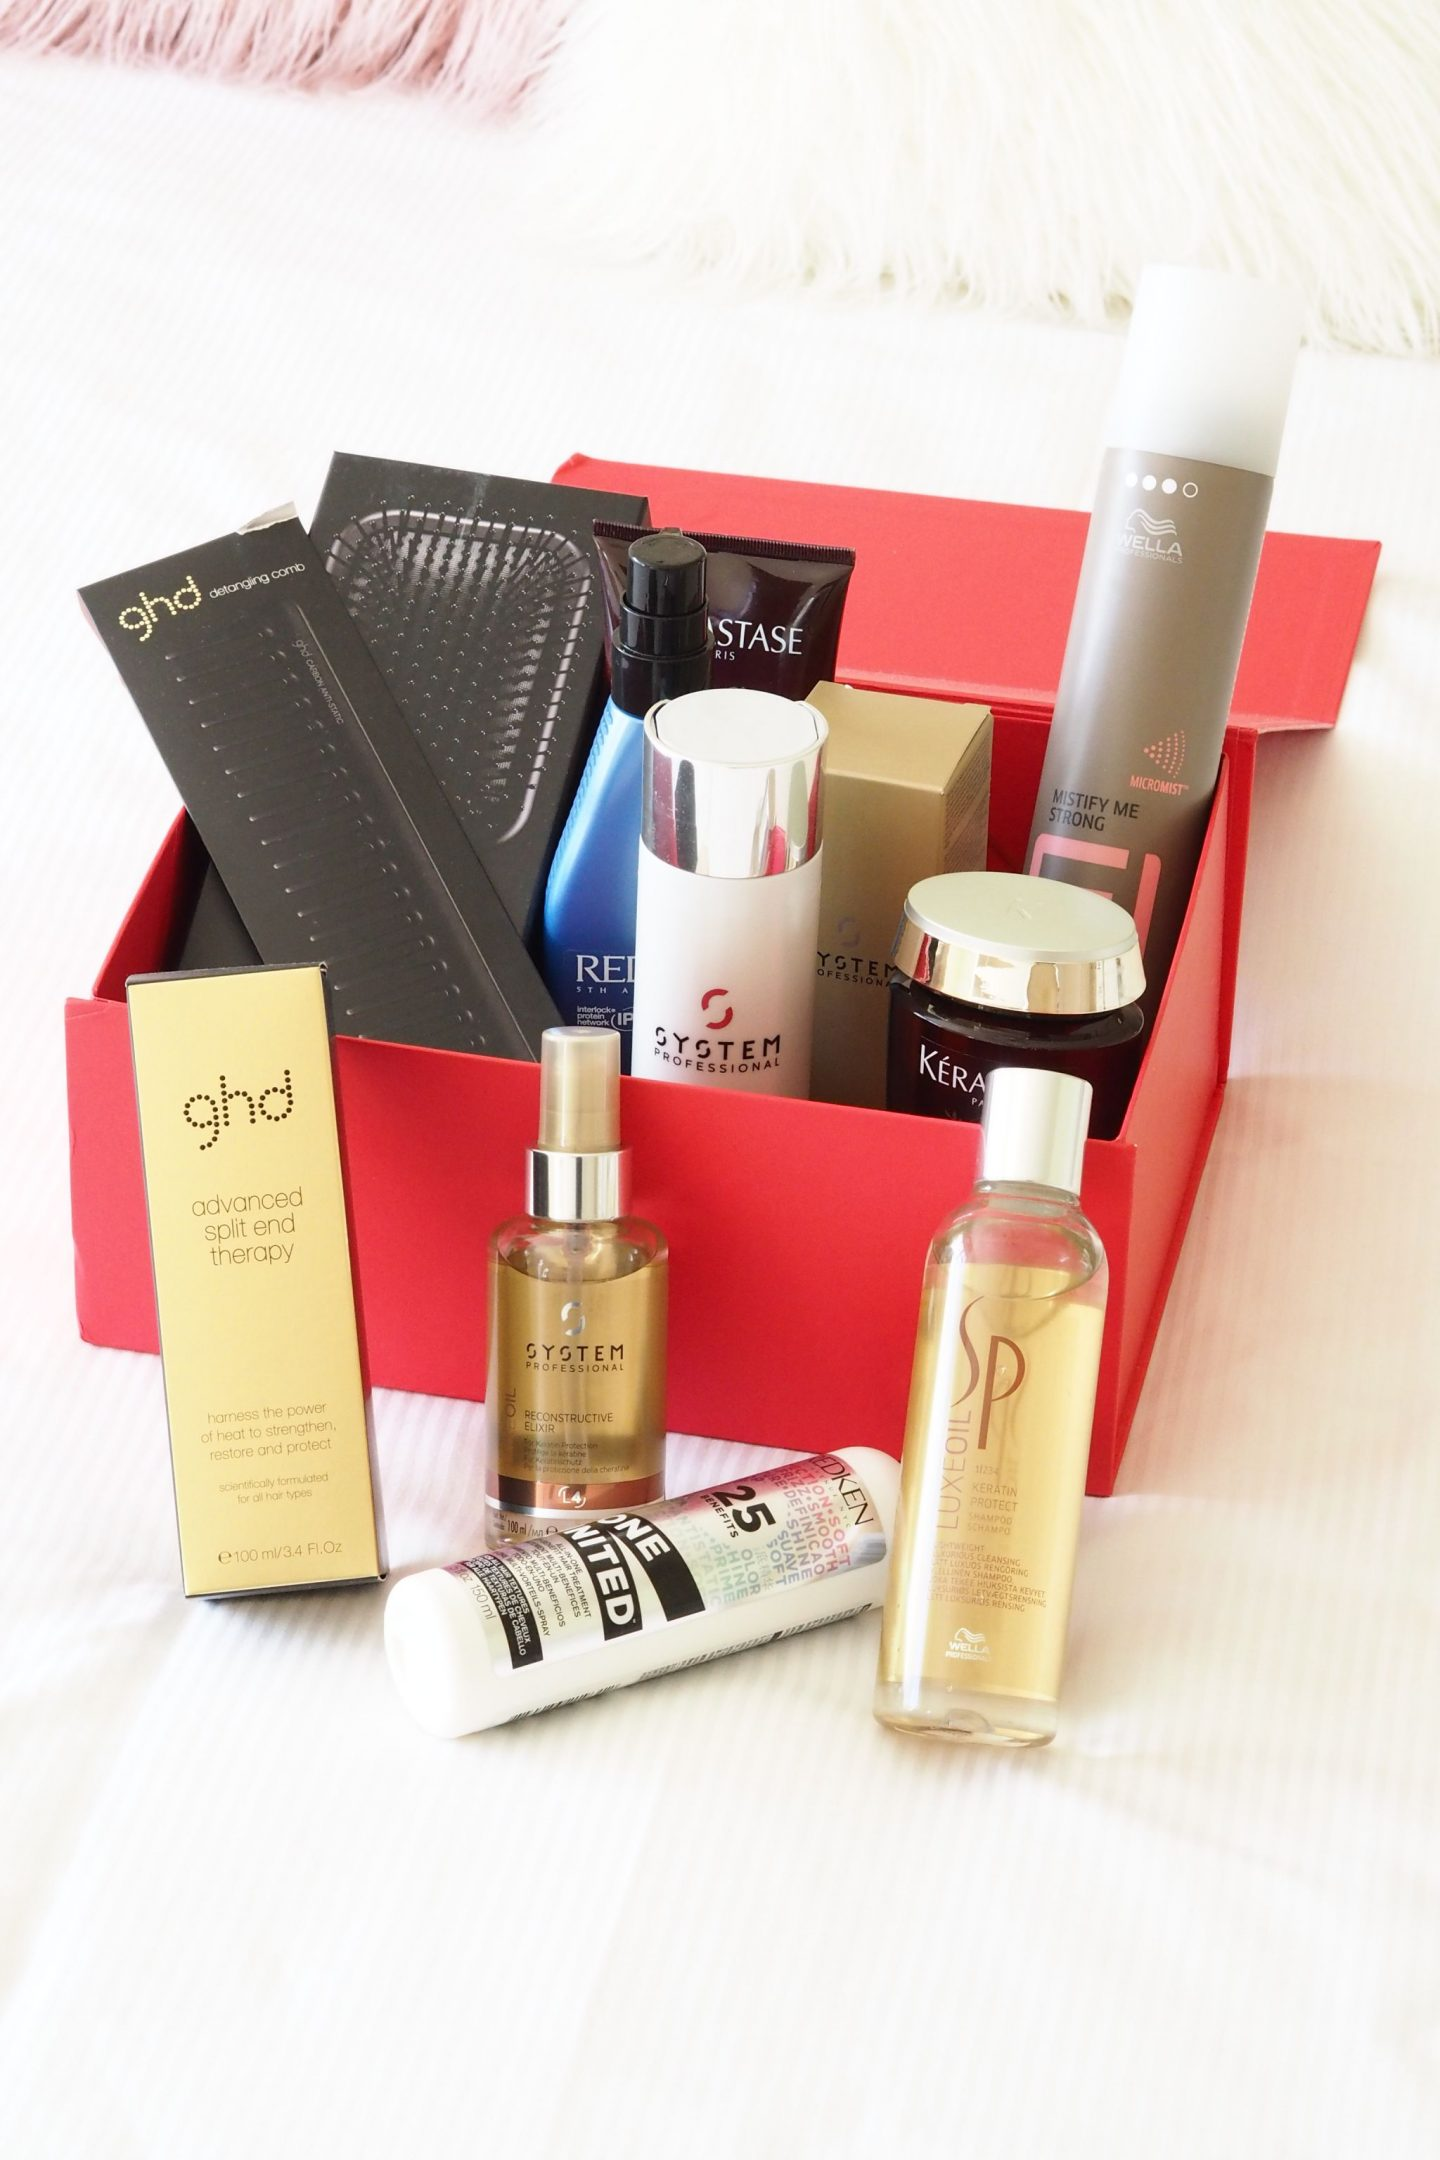 GHD, Wella, Redken and Keratase products sold by Regis hair salons